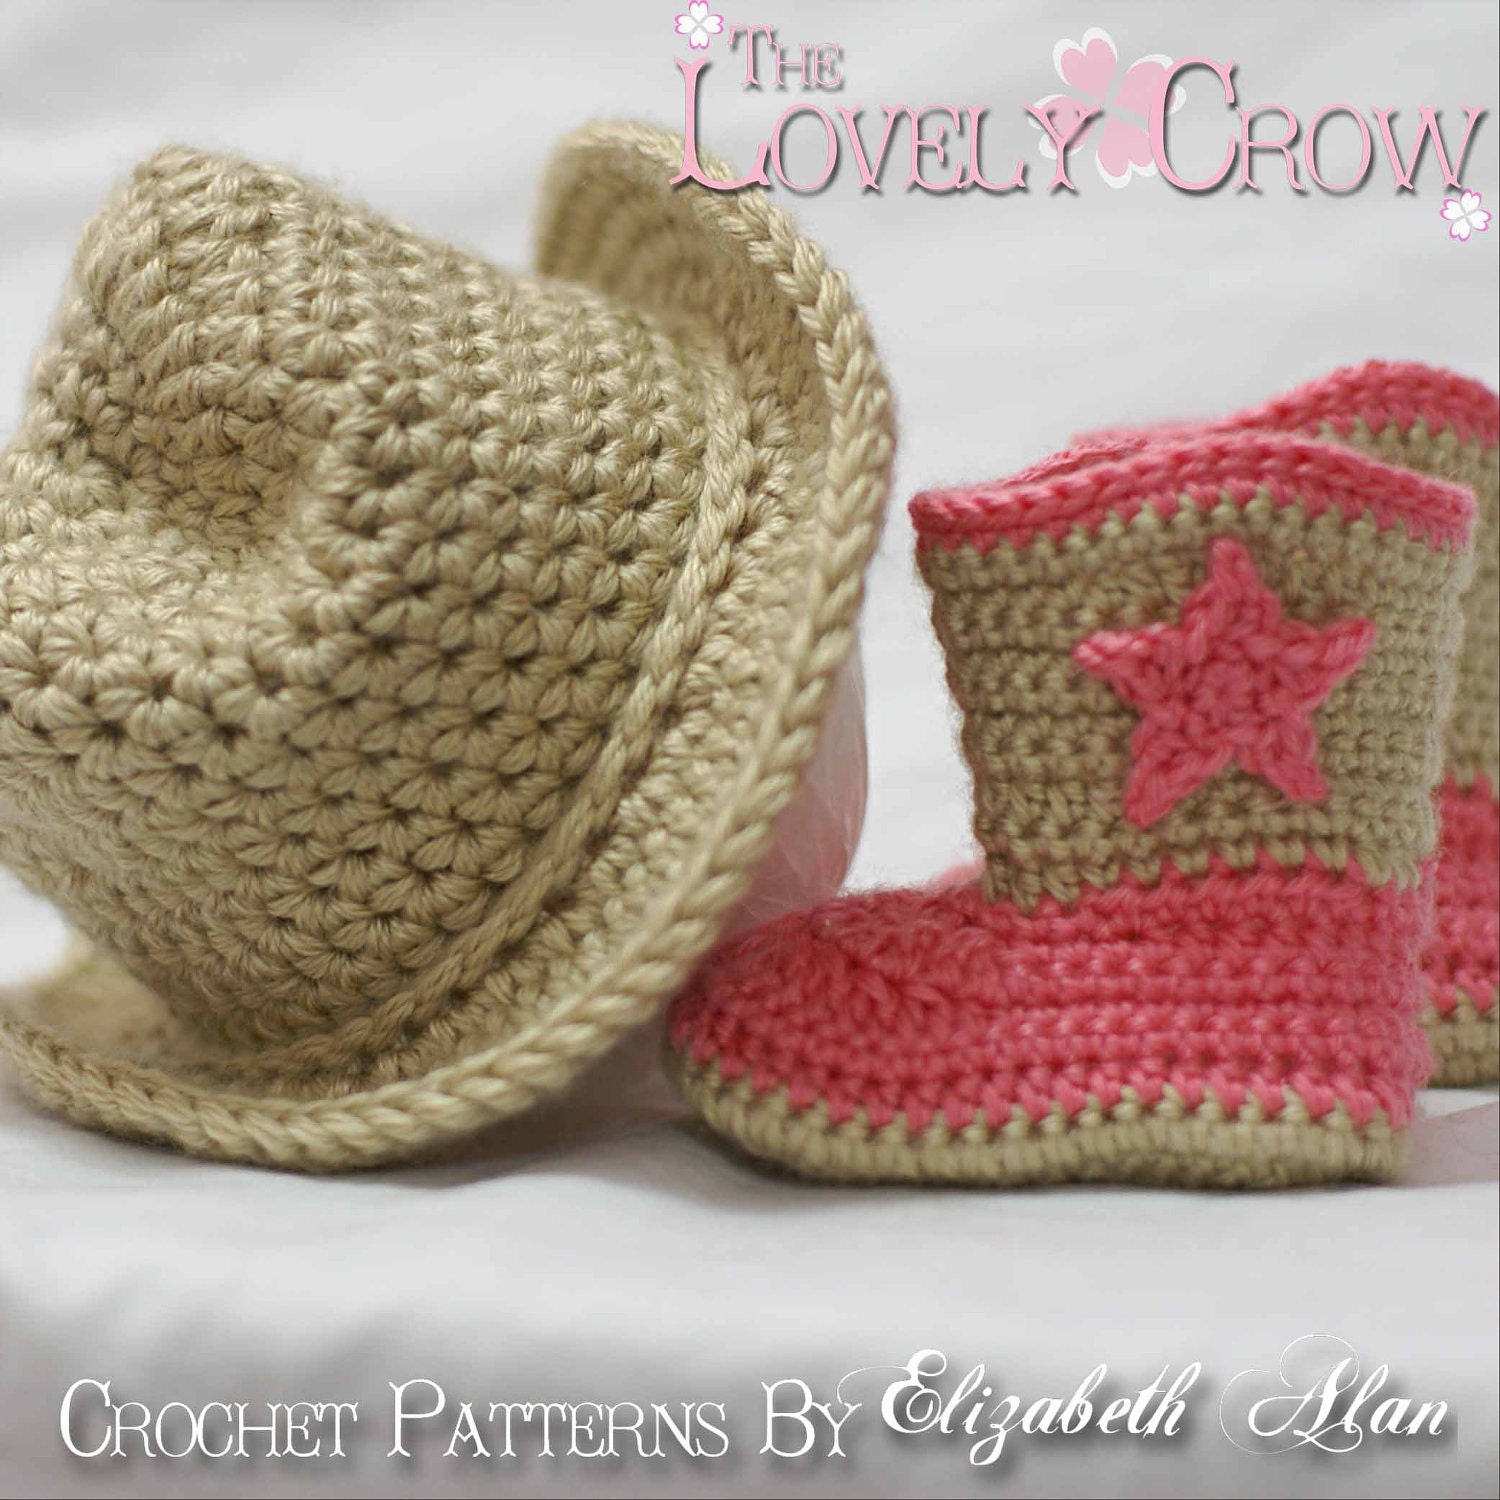 Free Crochet Cowboy Hat Pattern For Adults : Cowboy Crochet Patterns. Includes patterns for Boot